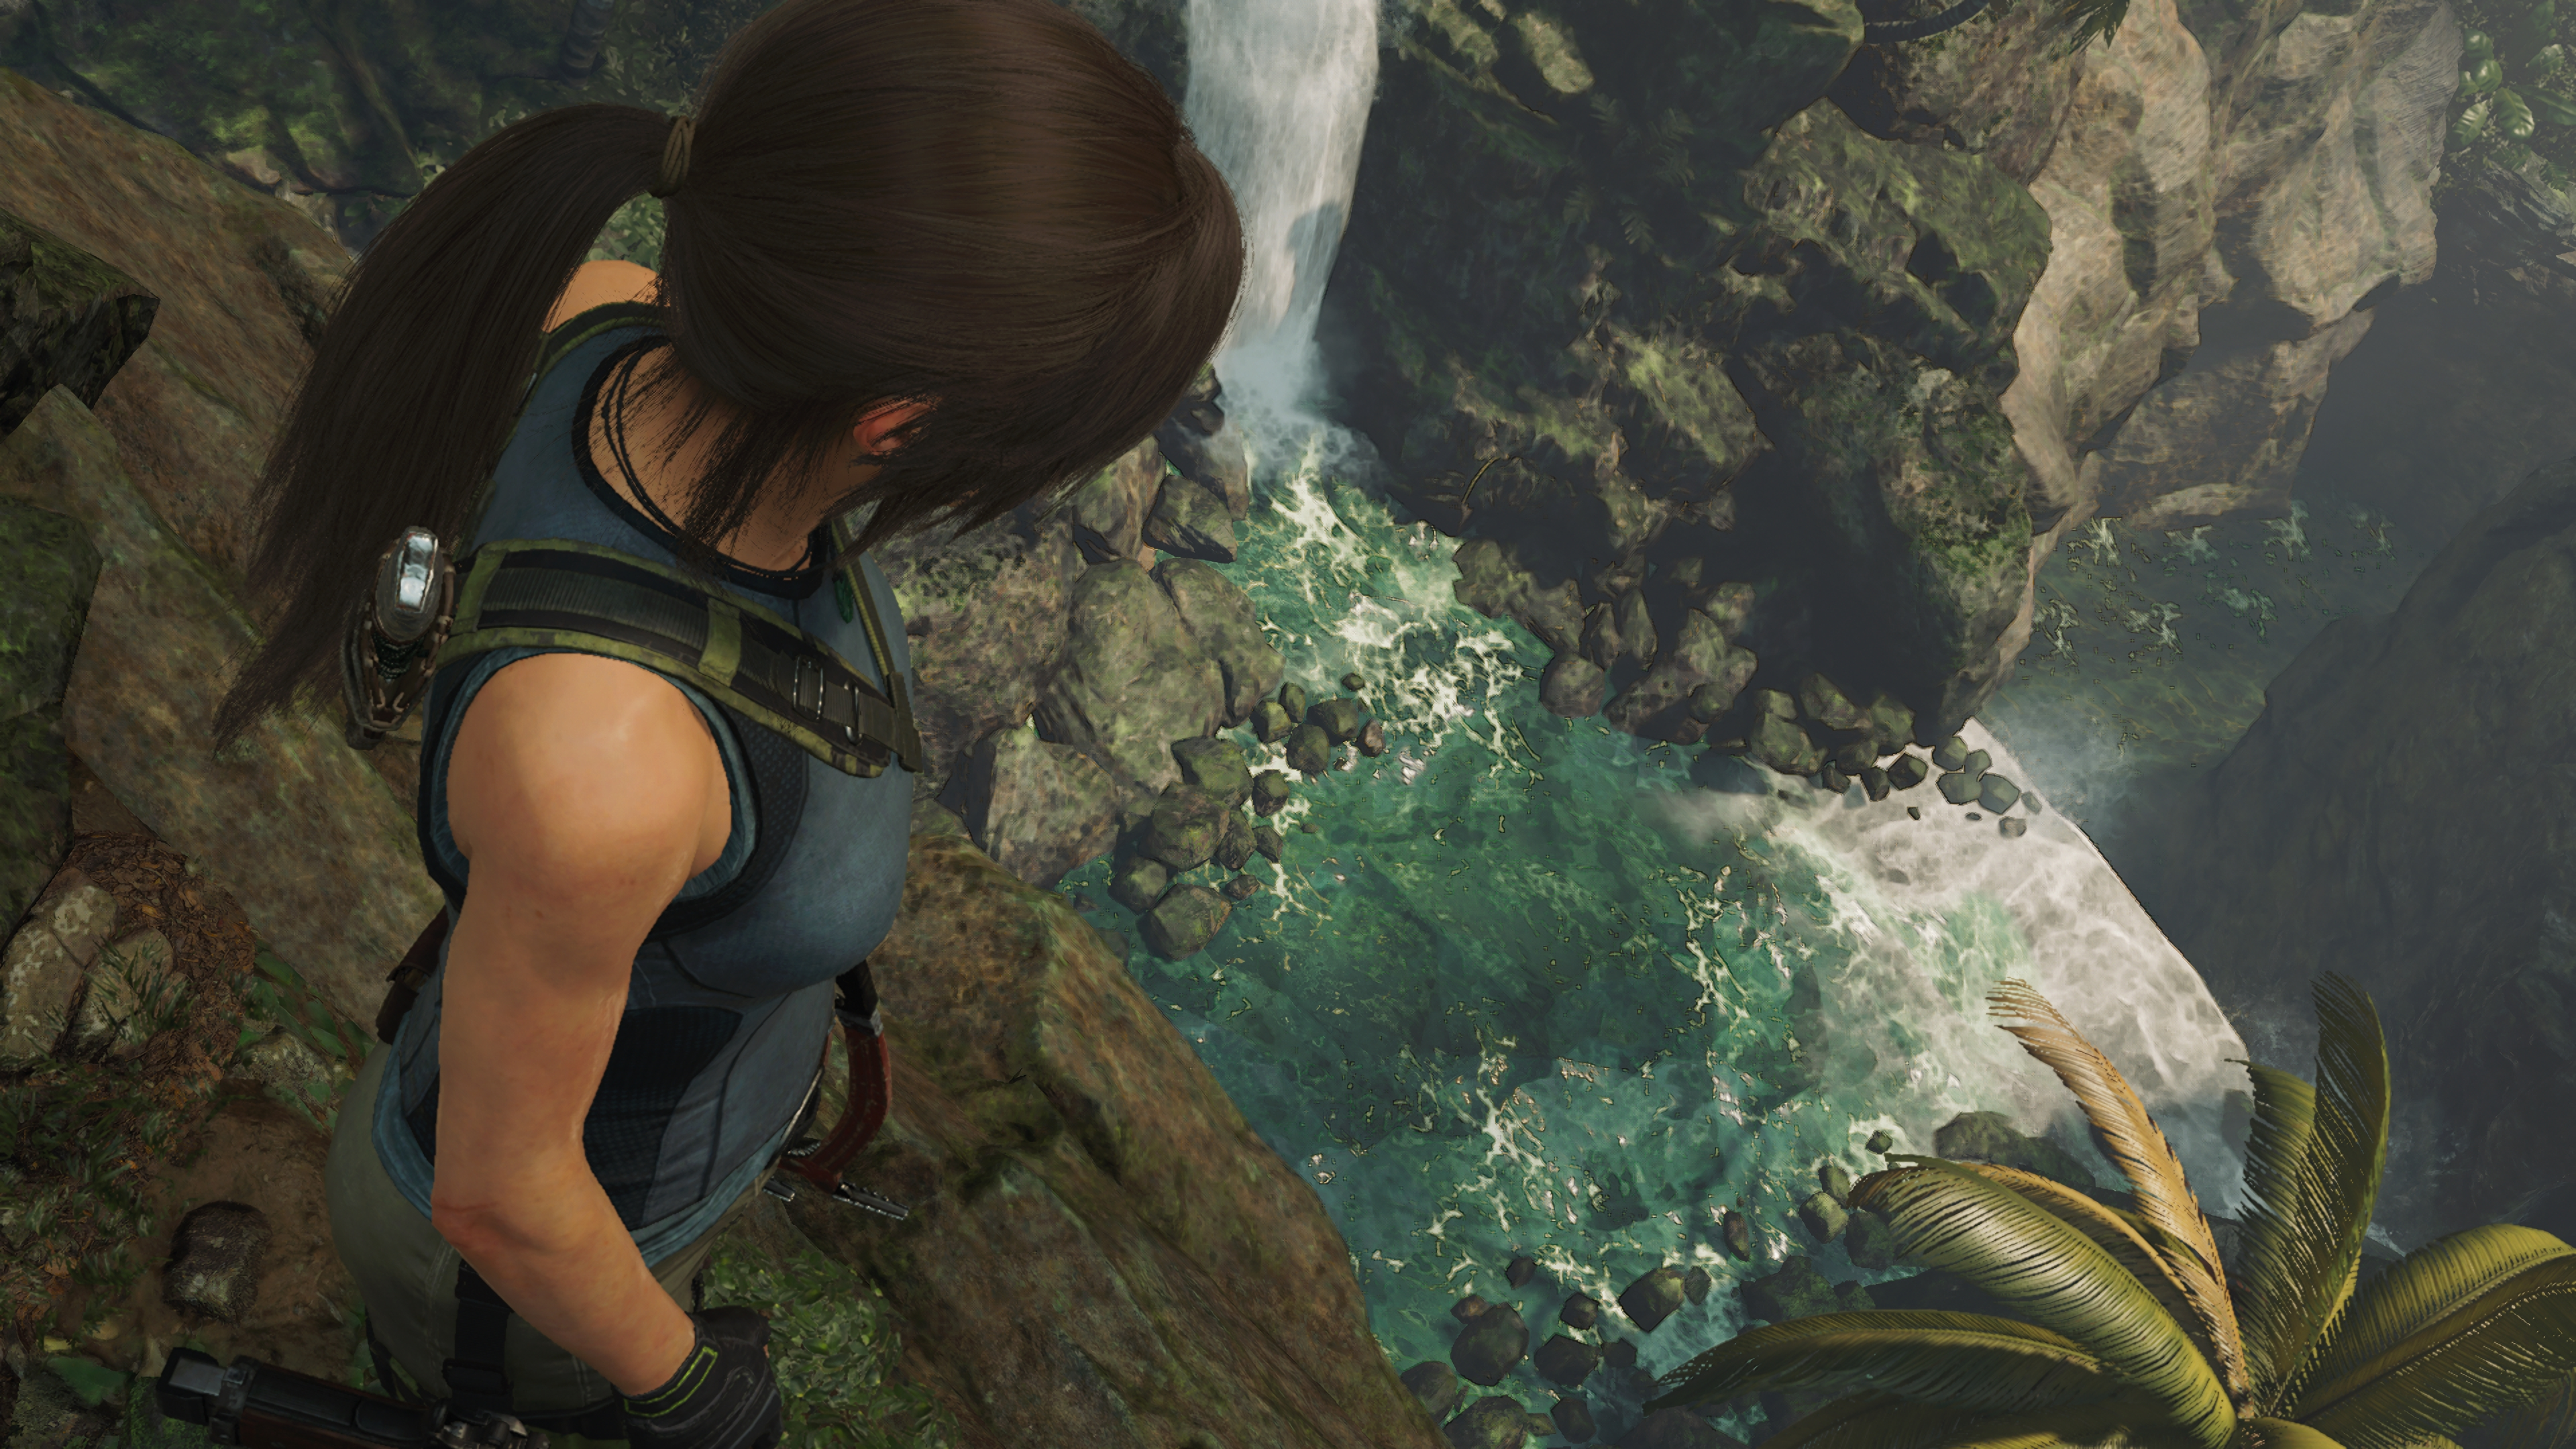 Shadow of the Tomb Raider скриншот 4k ultra graphics Nvidia GeForce RTX 2080 - Shadow of the Tomb Raider Лара Крофт